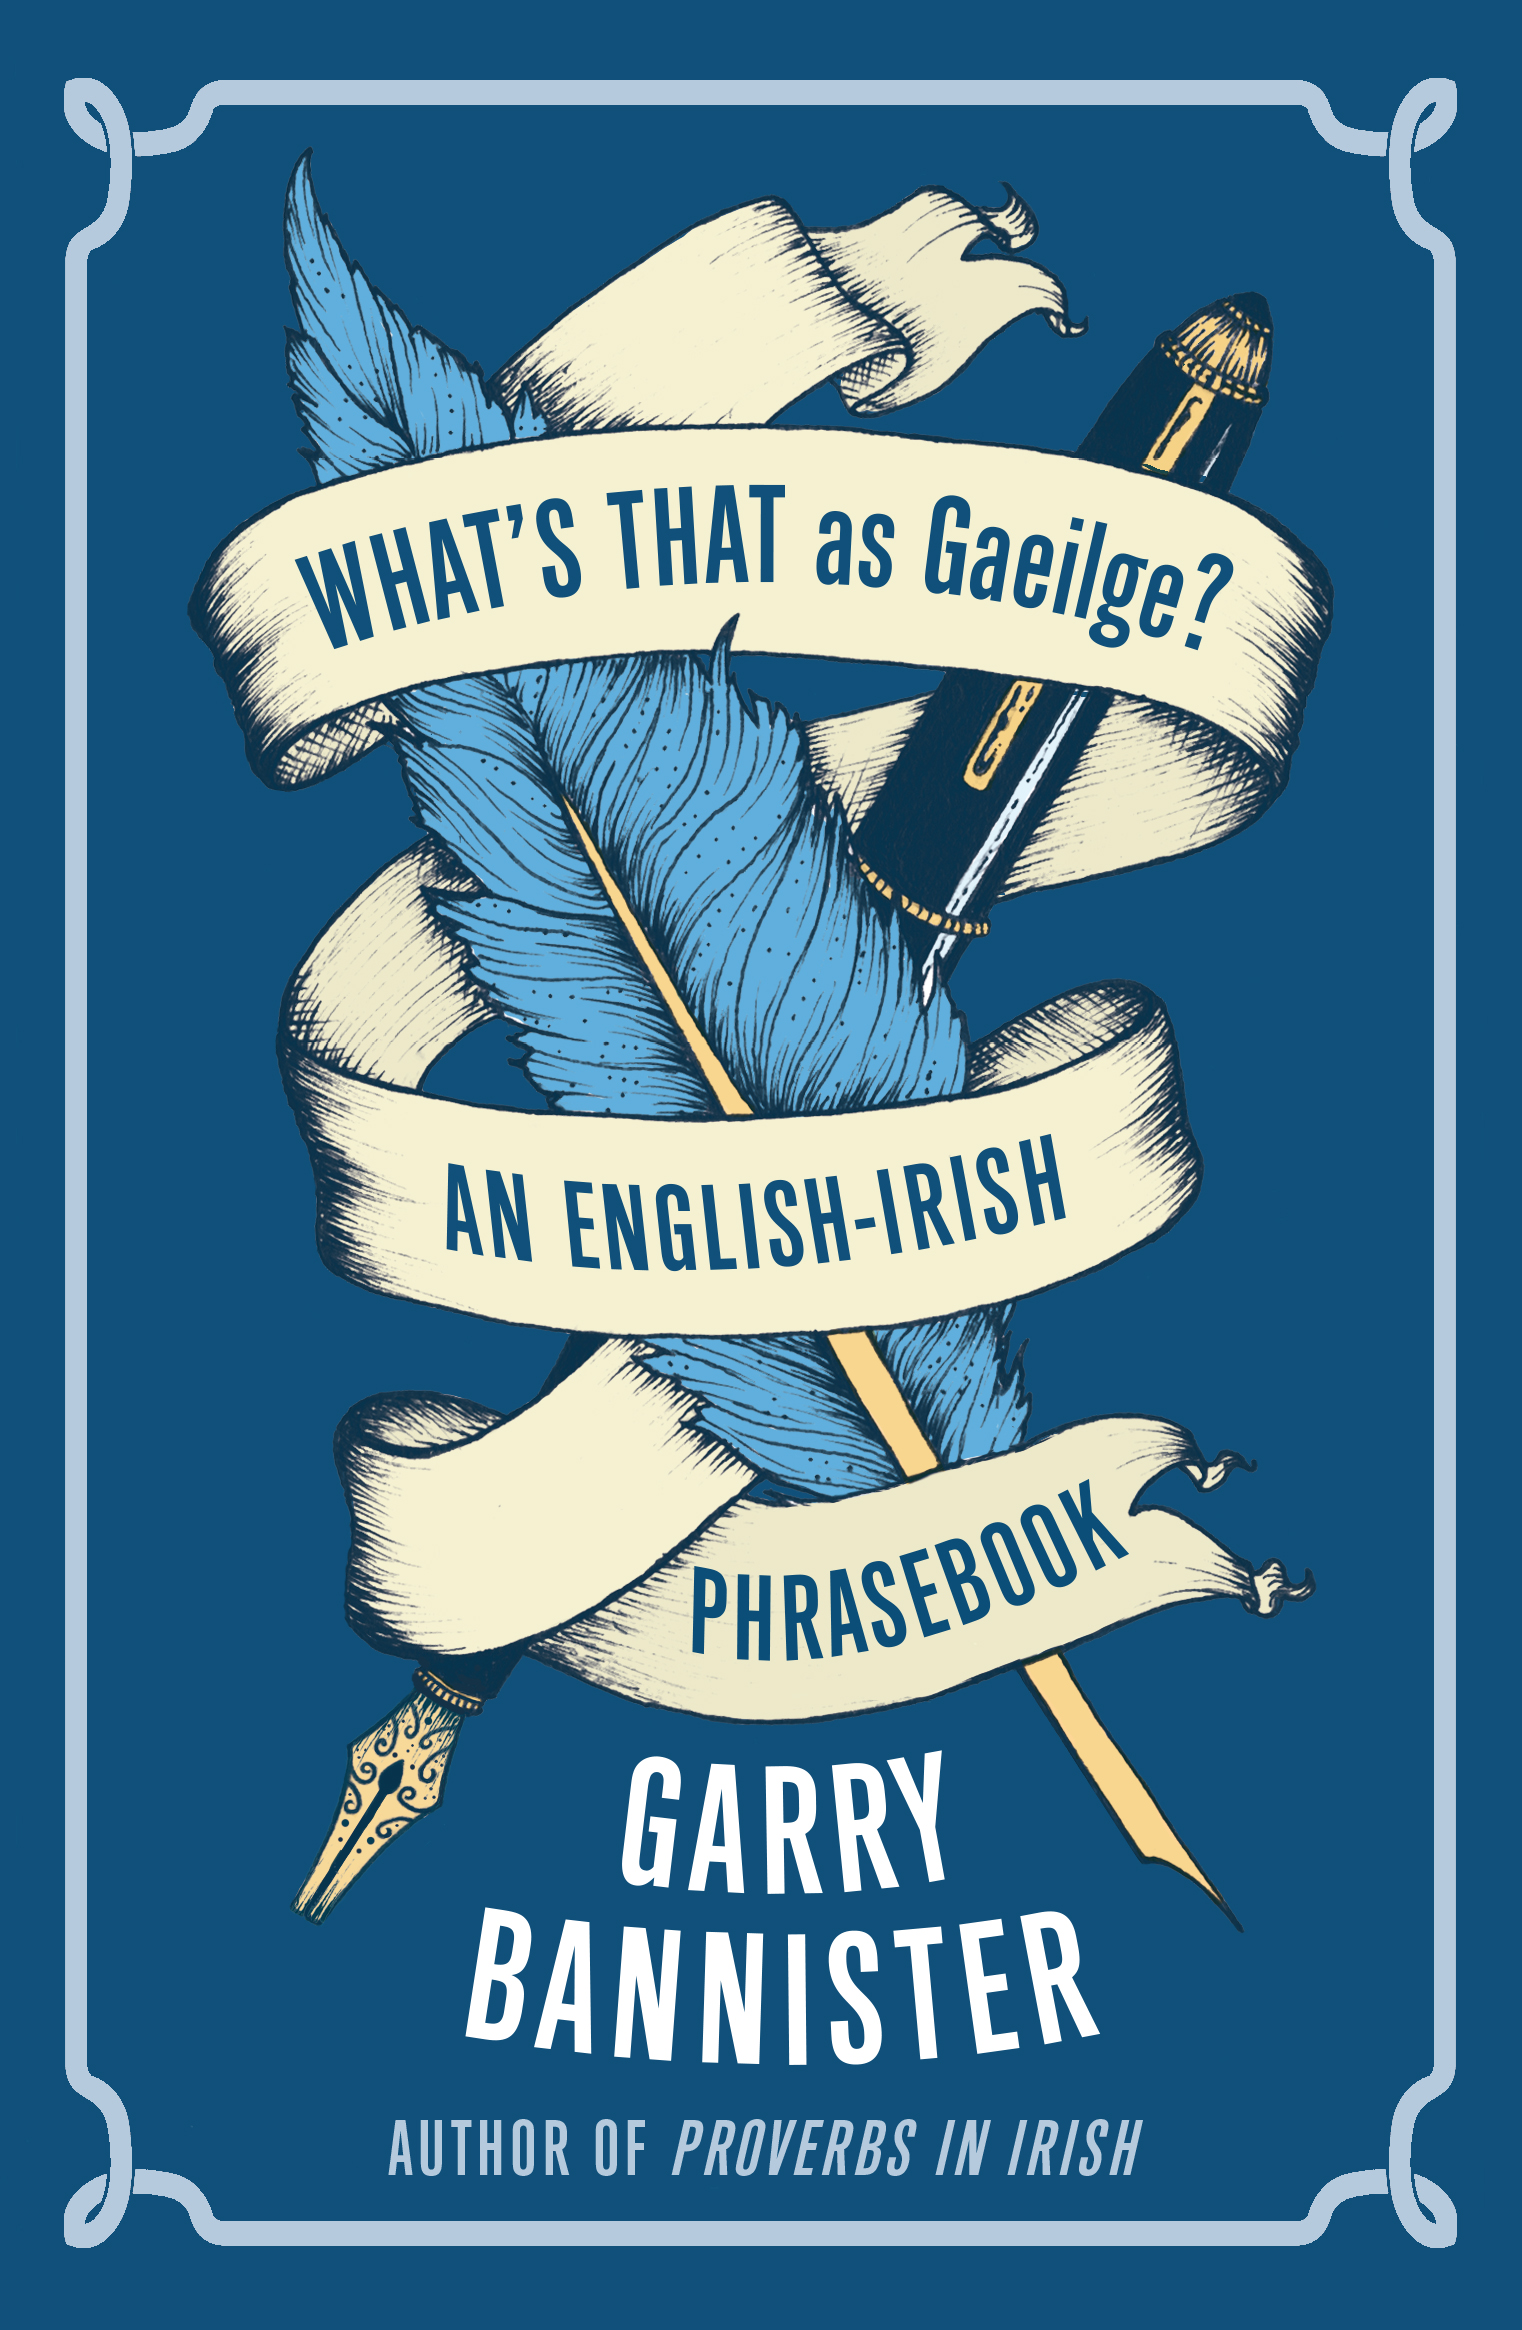 What's That as Gaeilge